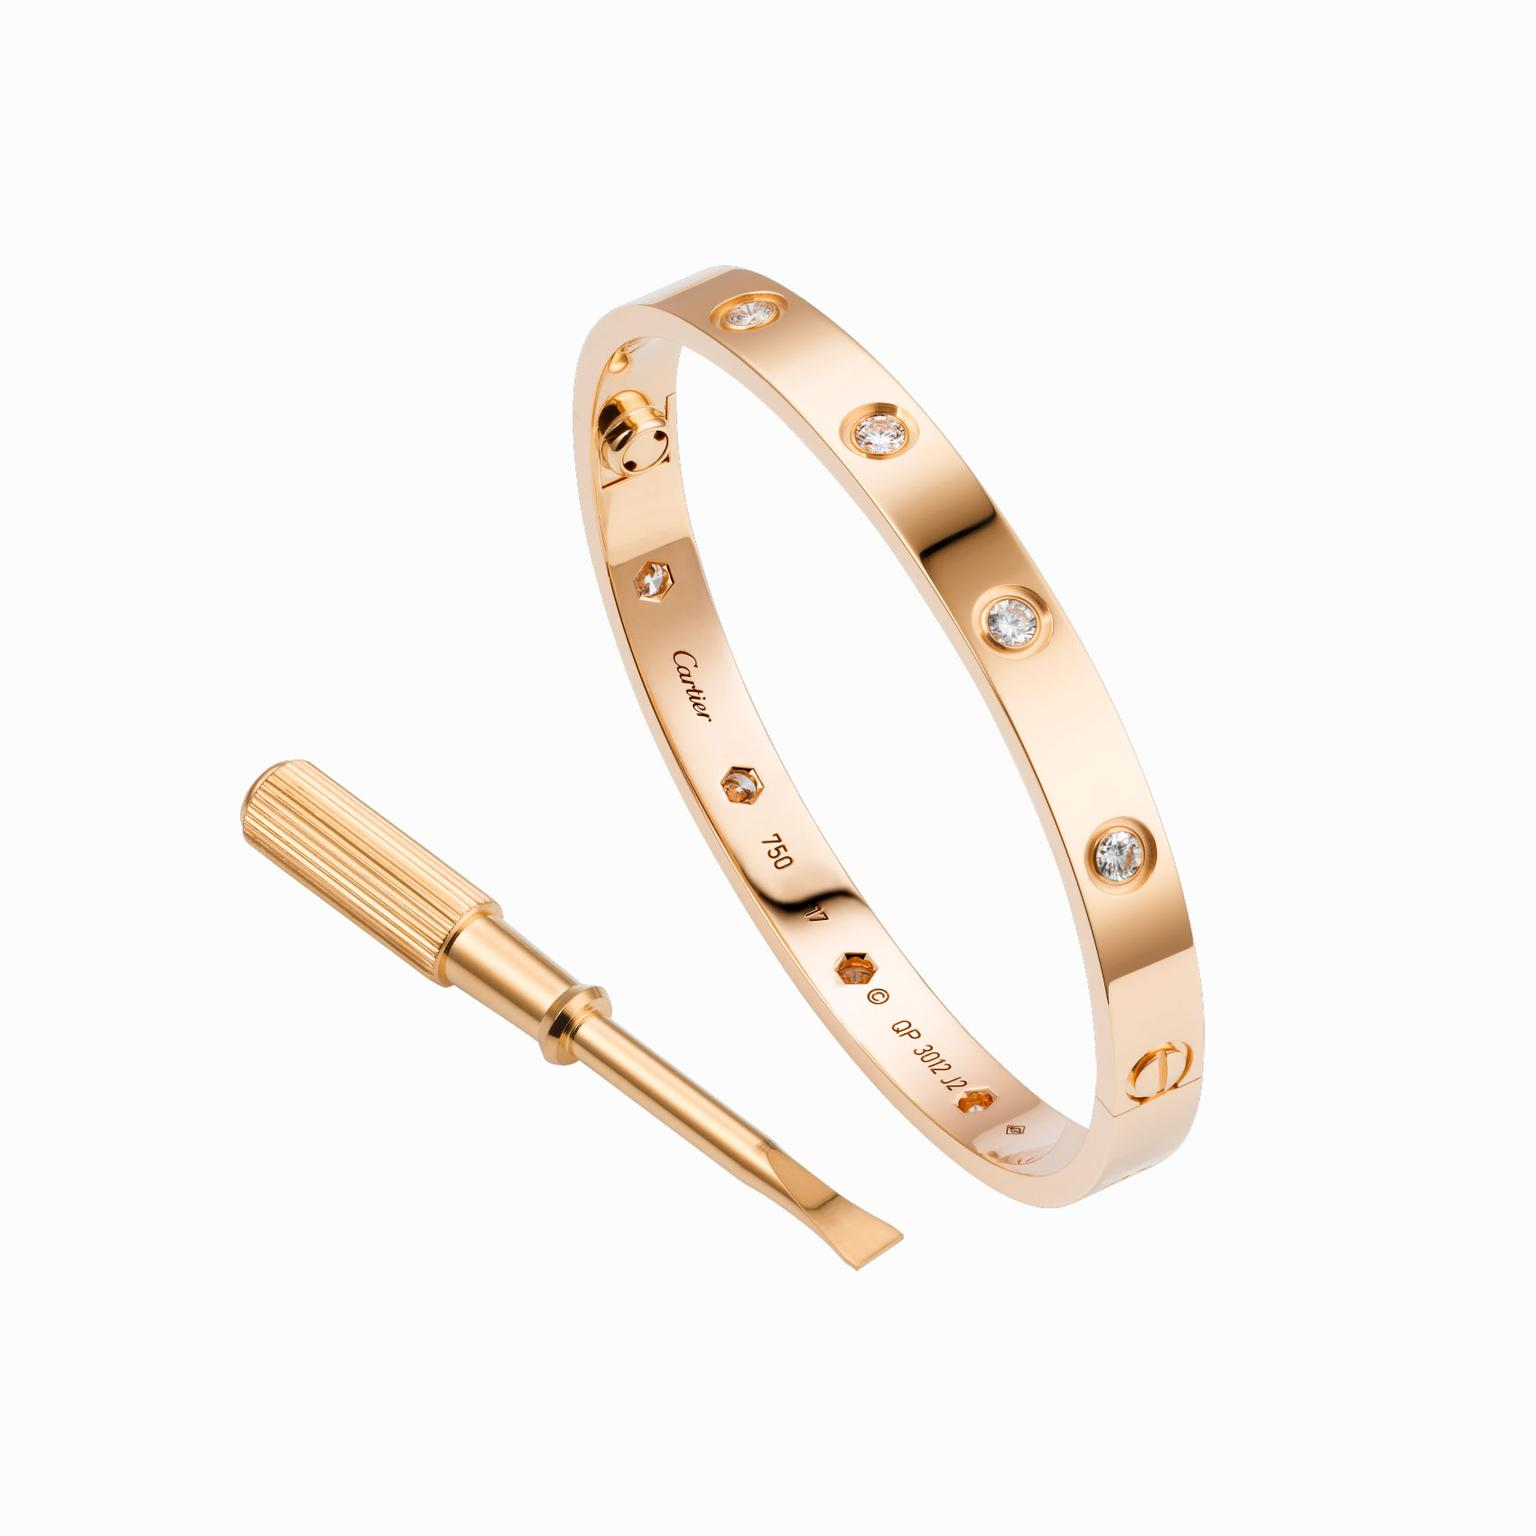 Cartier Love Bracelet with diamonds and screwdriver